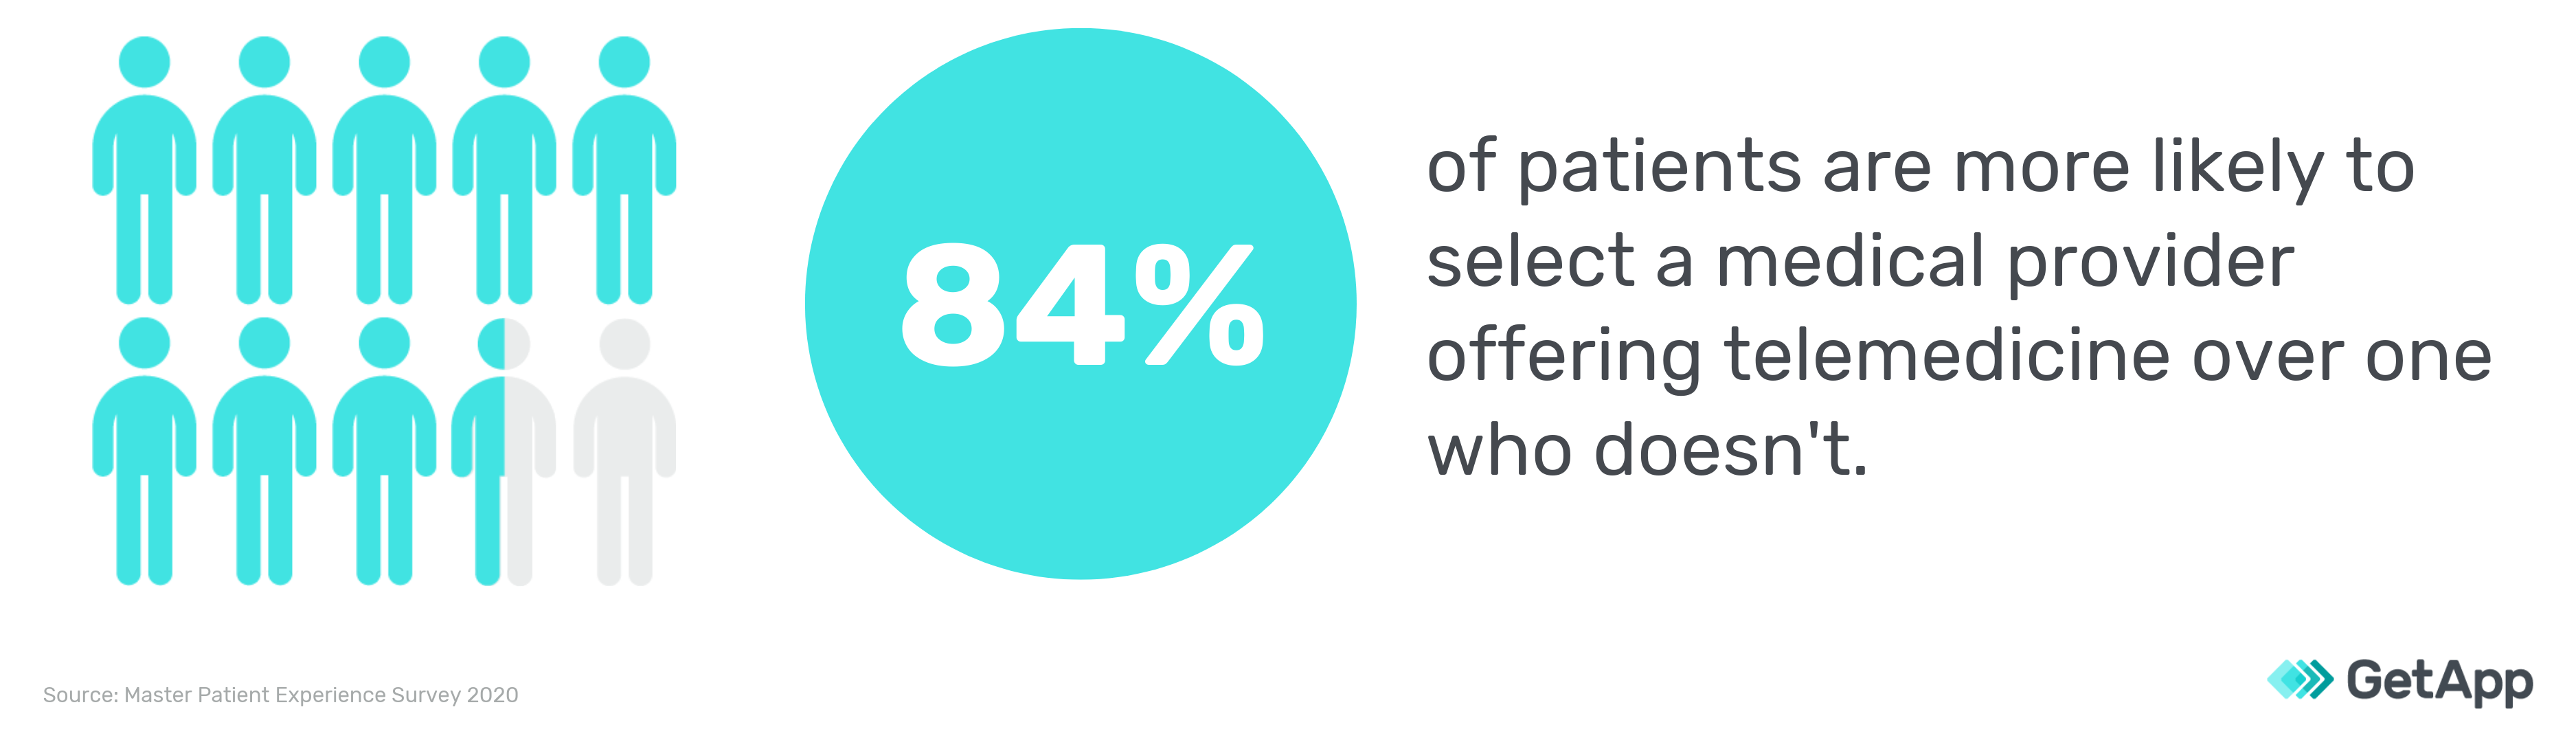 telemedicine selection survey results